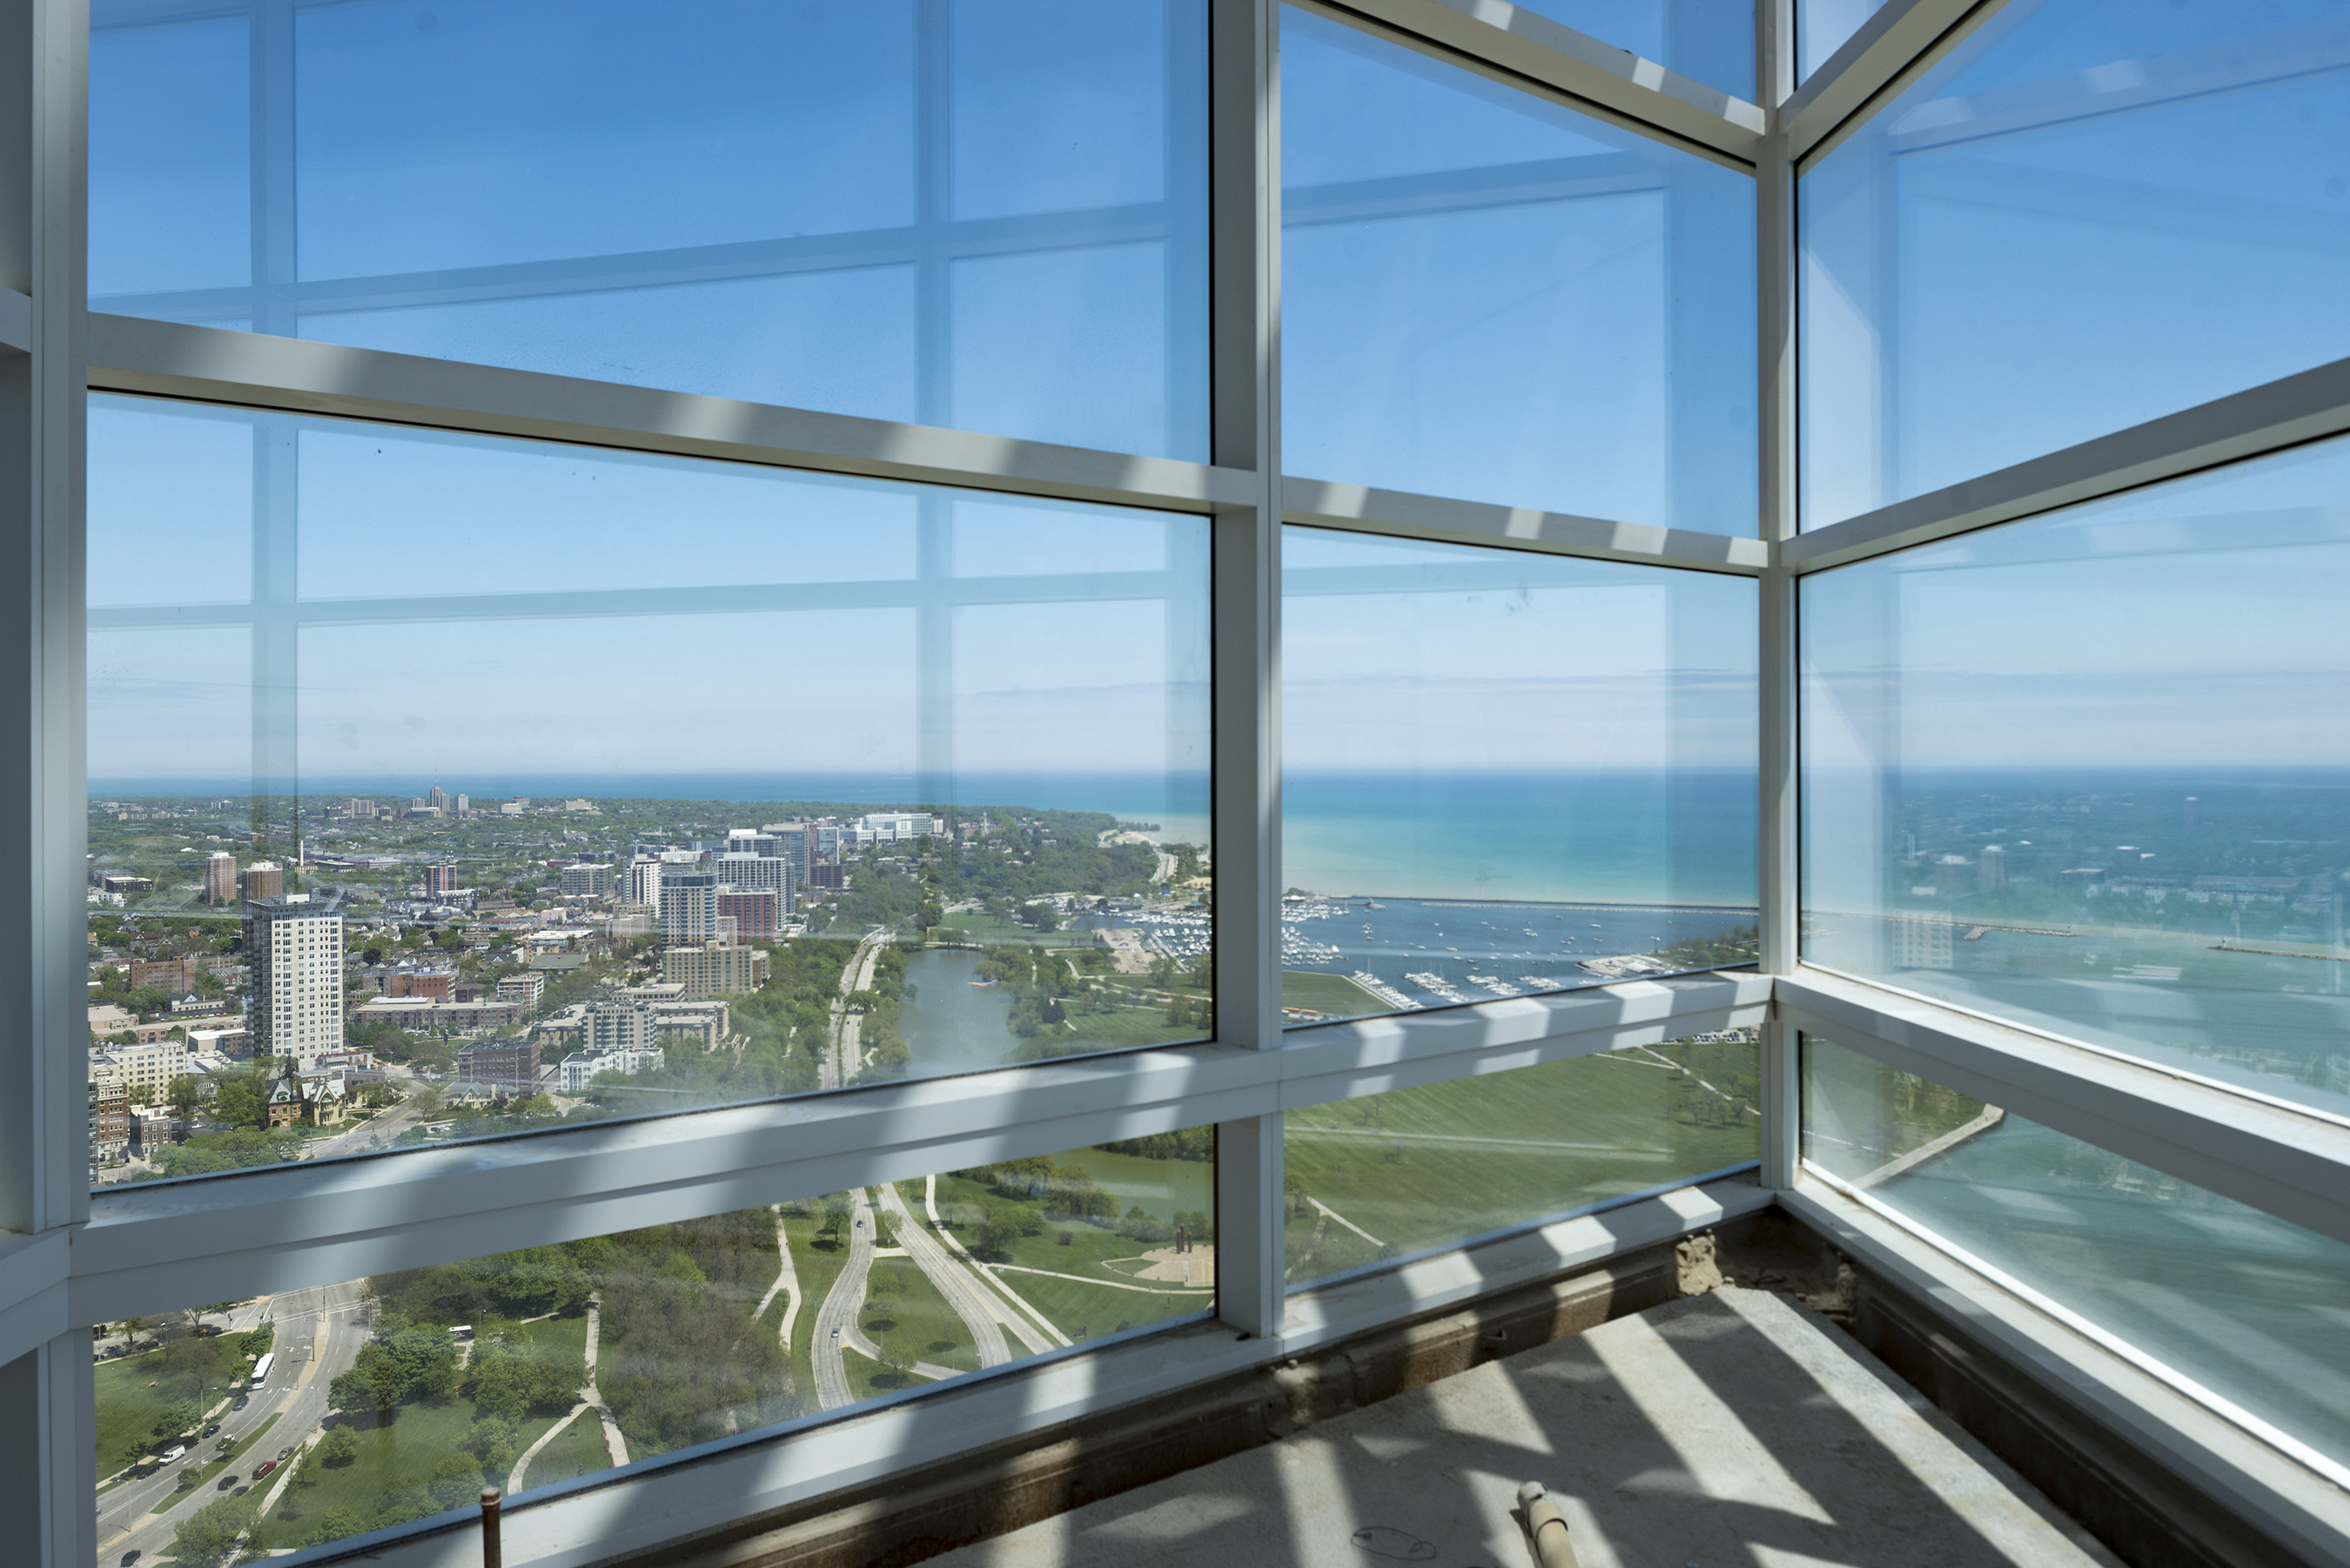 The Top of The Tower on the 32nd floor is open to all employees and offers outstanding views of Milwaukee and Lake Michigan.